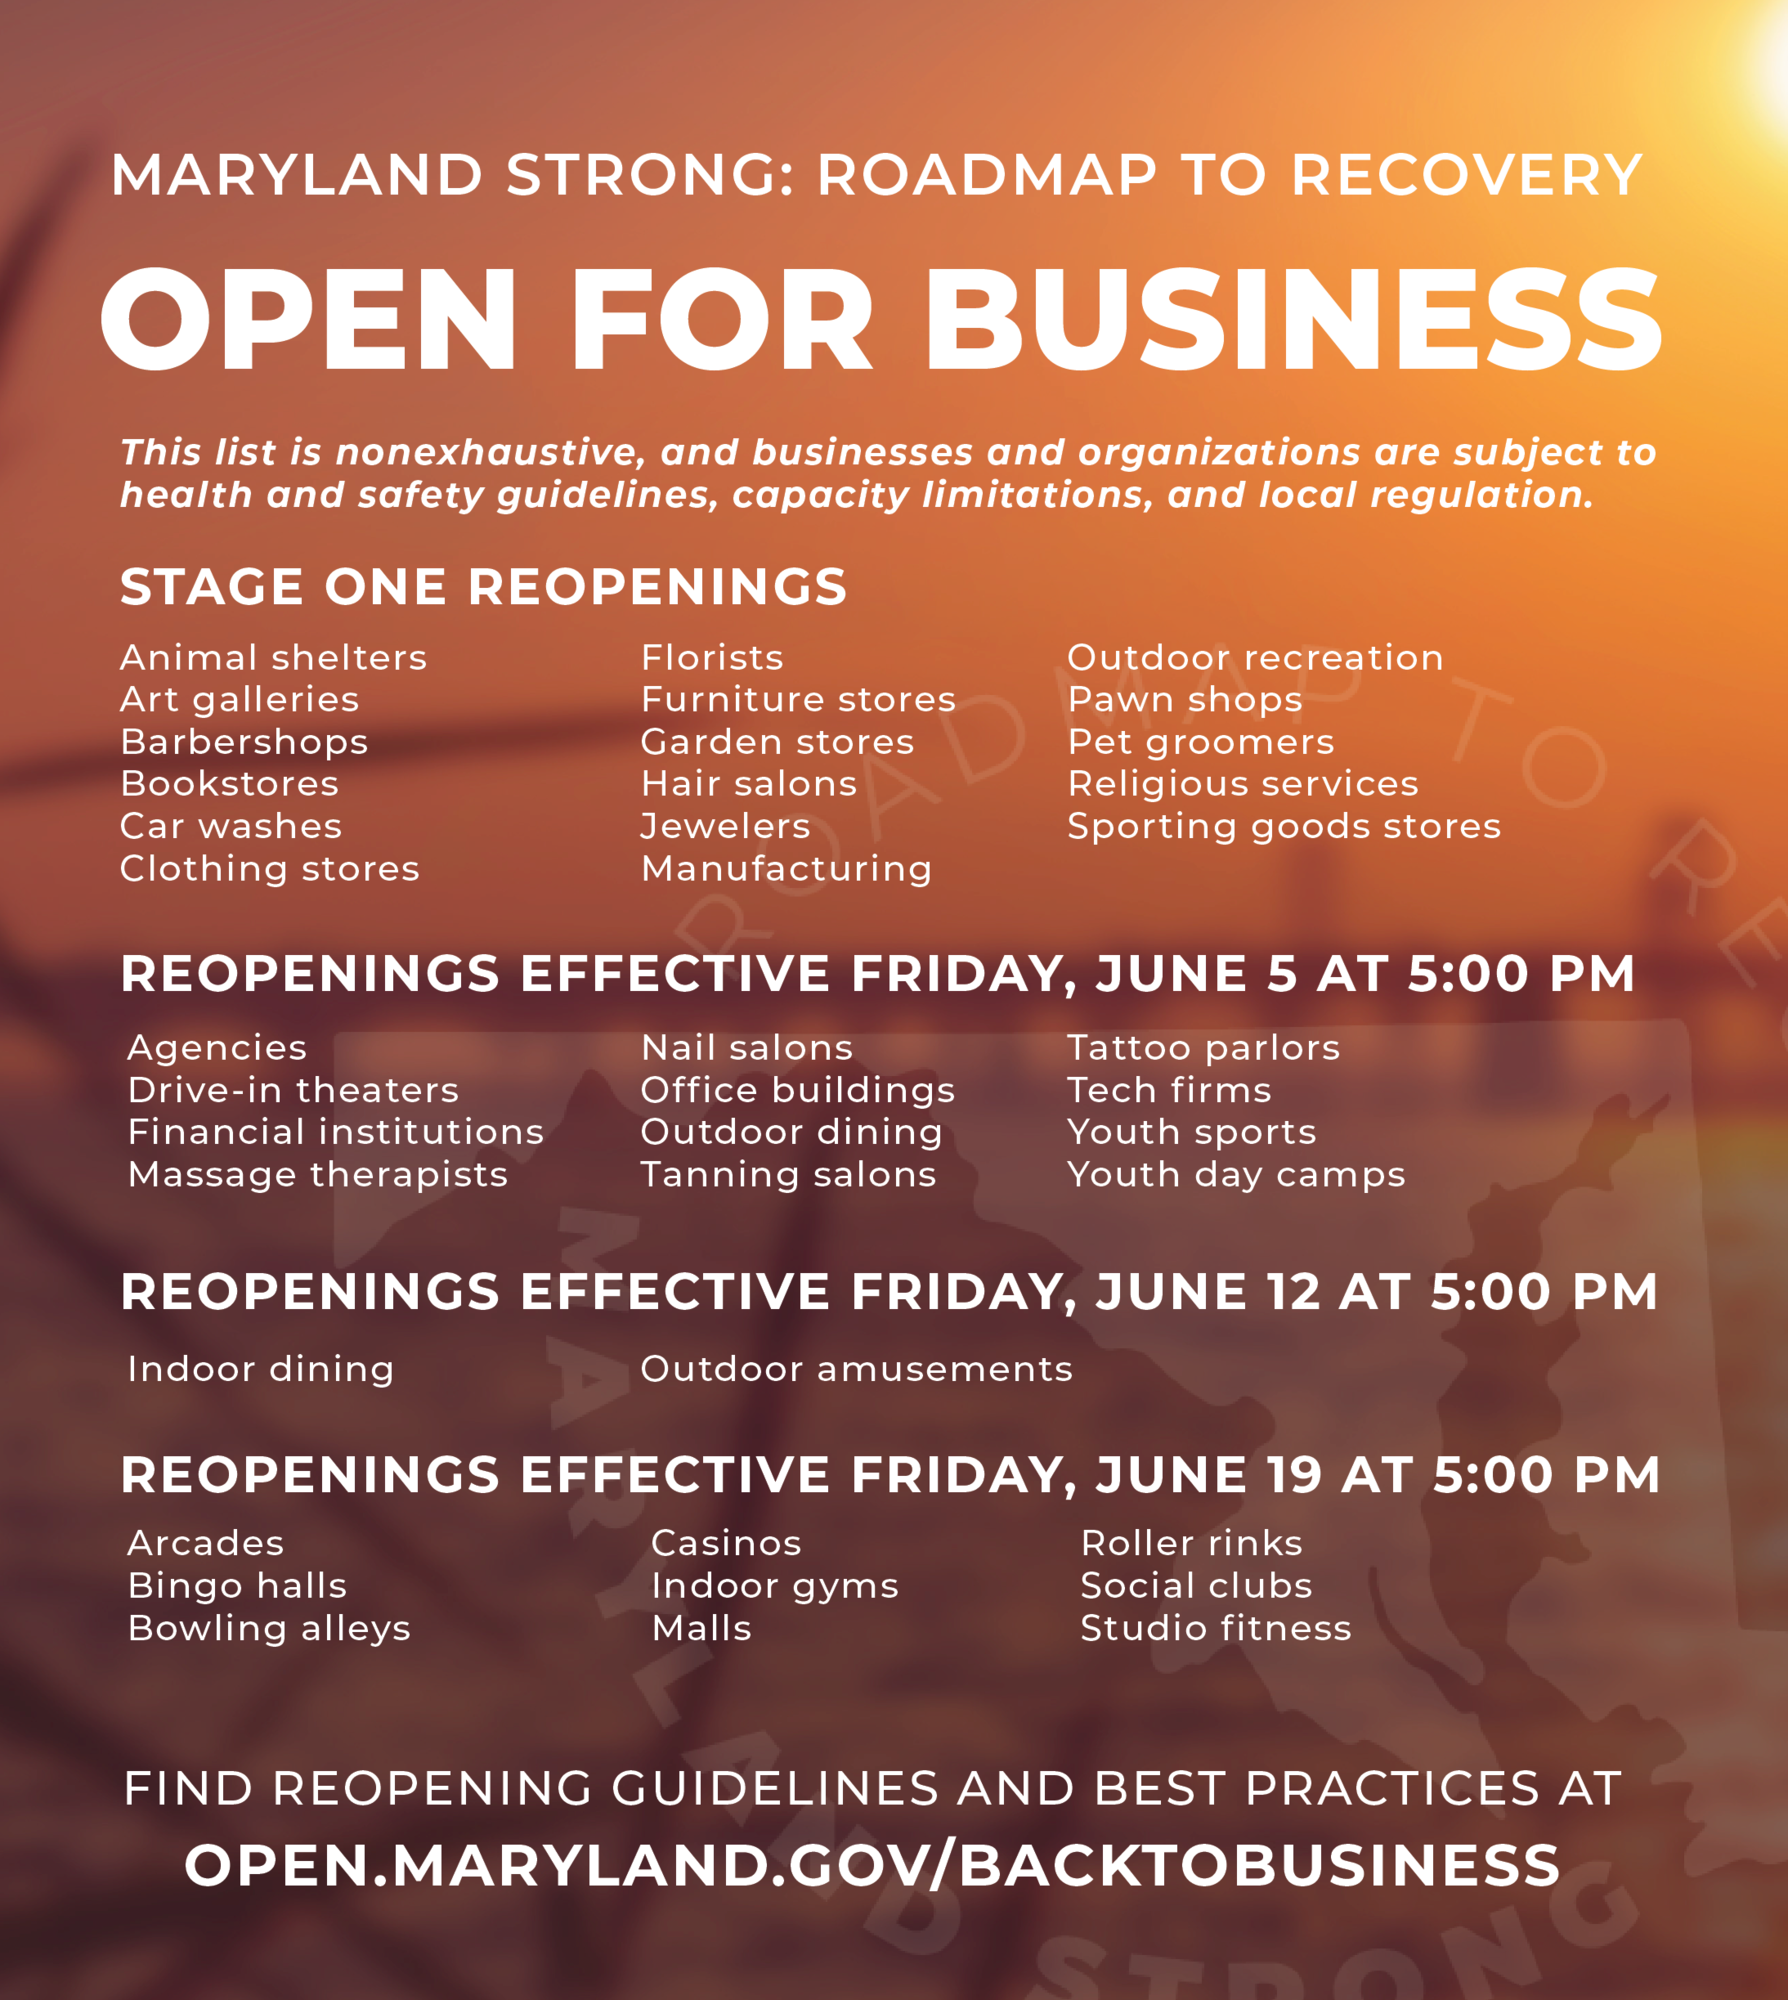 A list of business reopenings organized by effective date